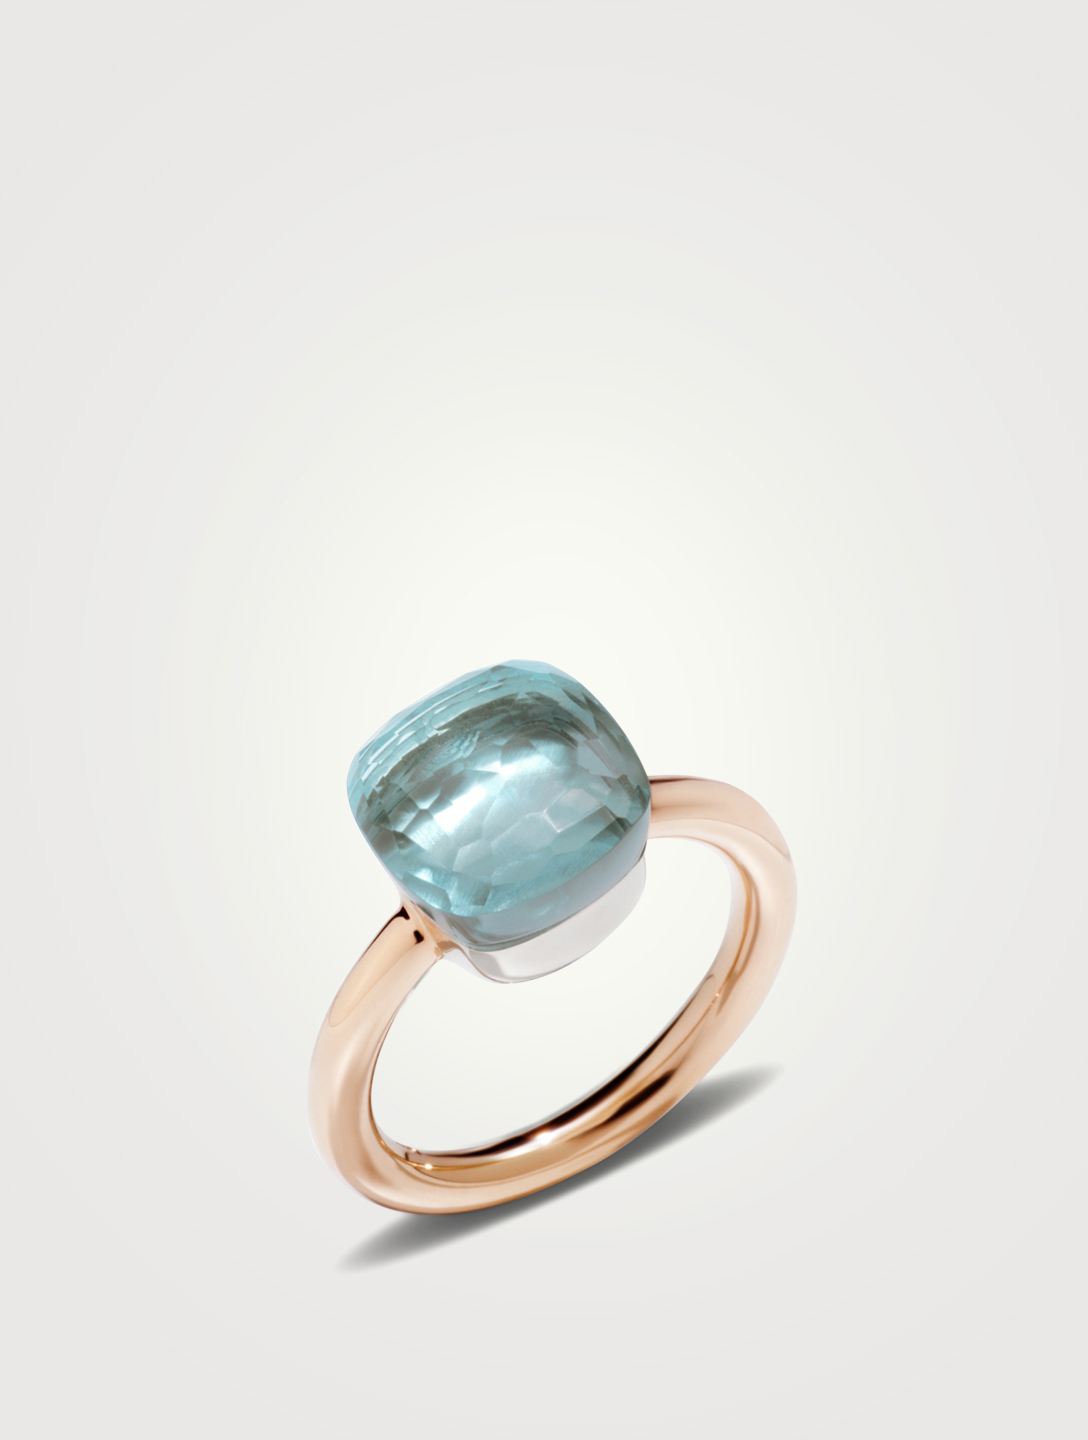 POMELLATO Classic Nudo 18K White And Rose Gold Ring With Sky Blue Topaz Women's Metallic